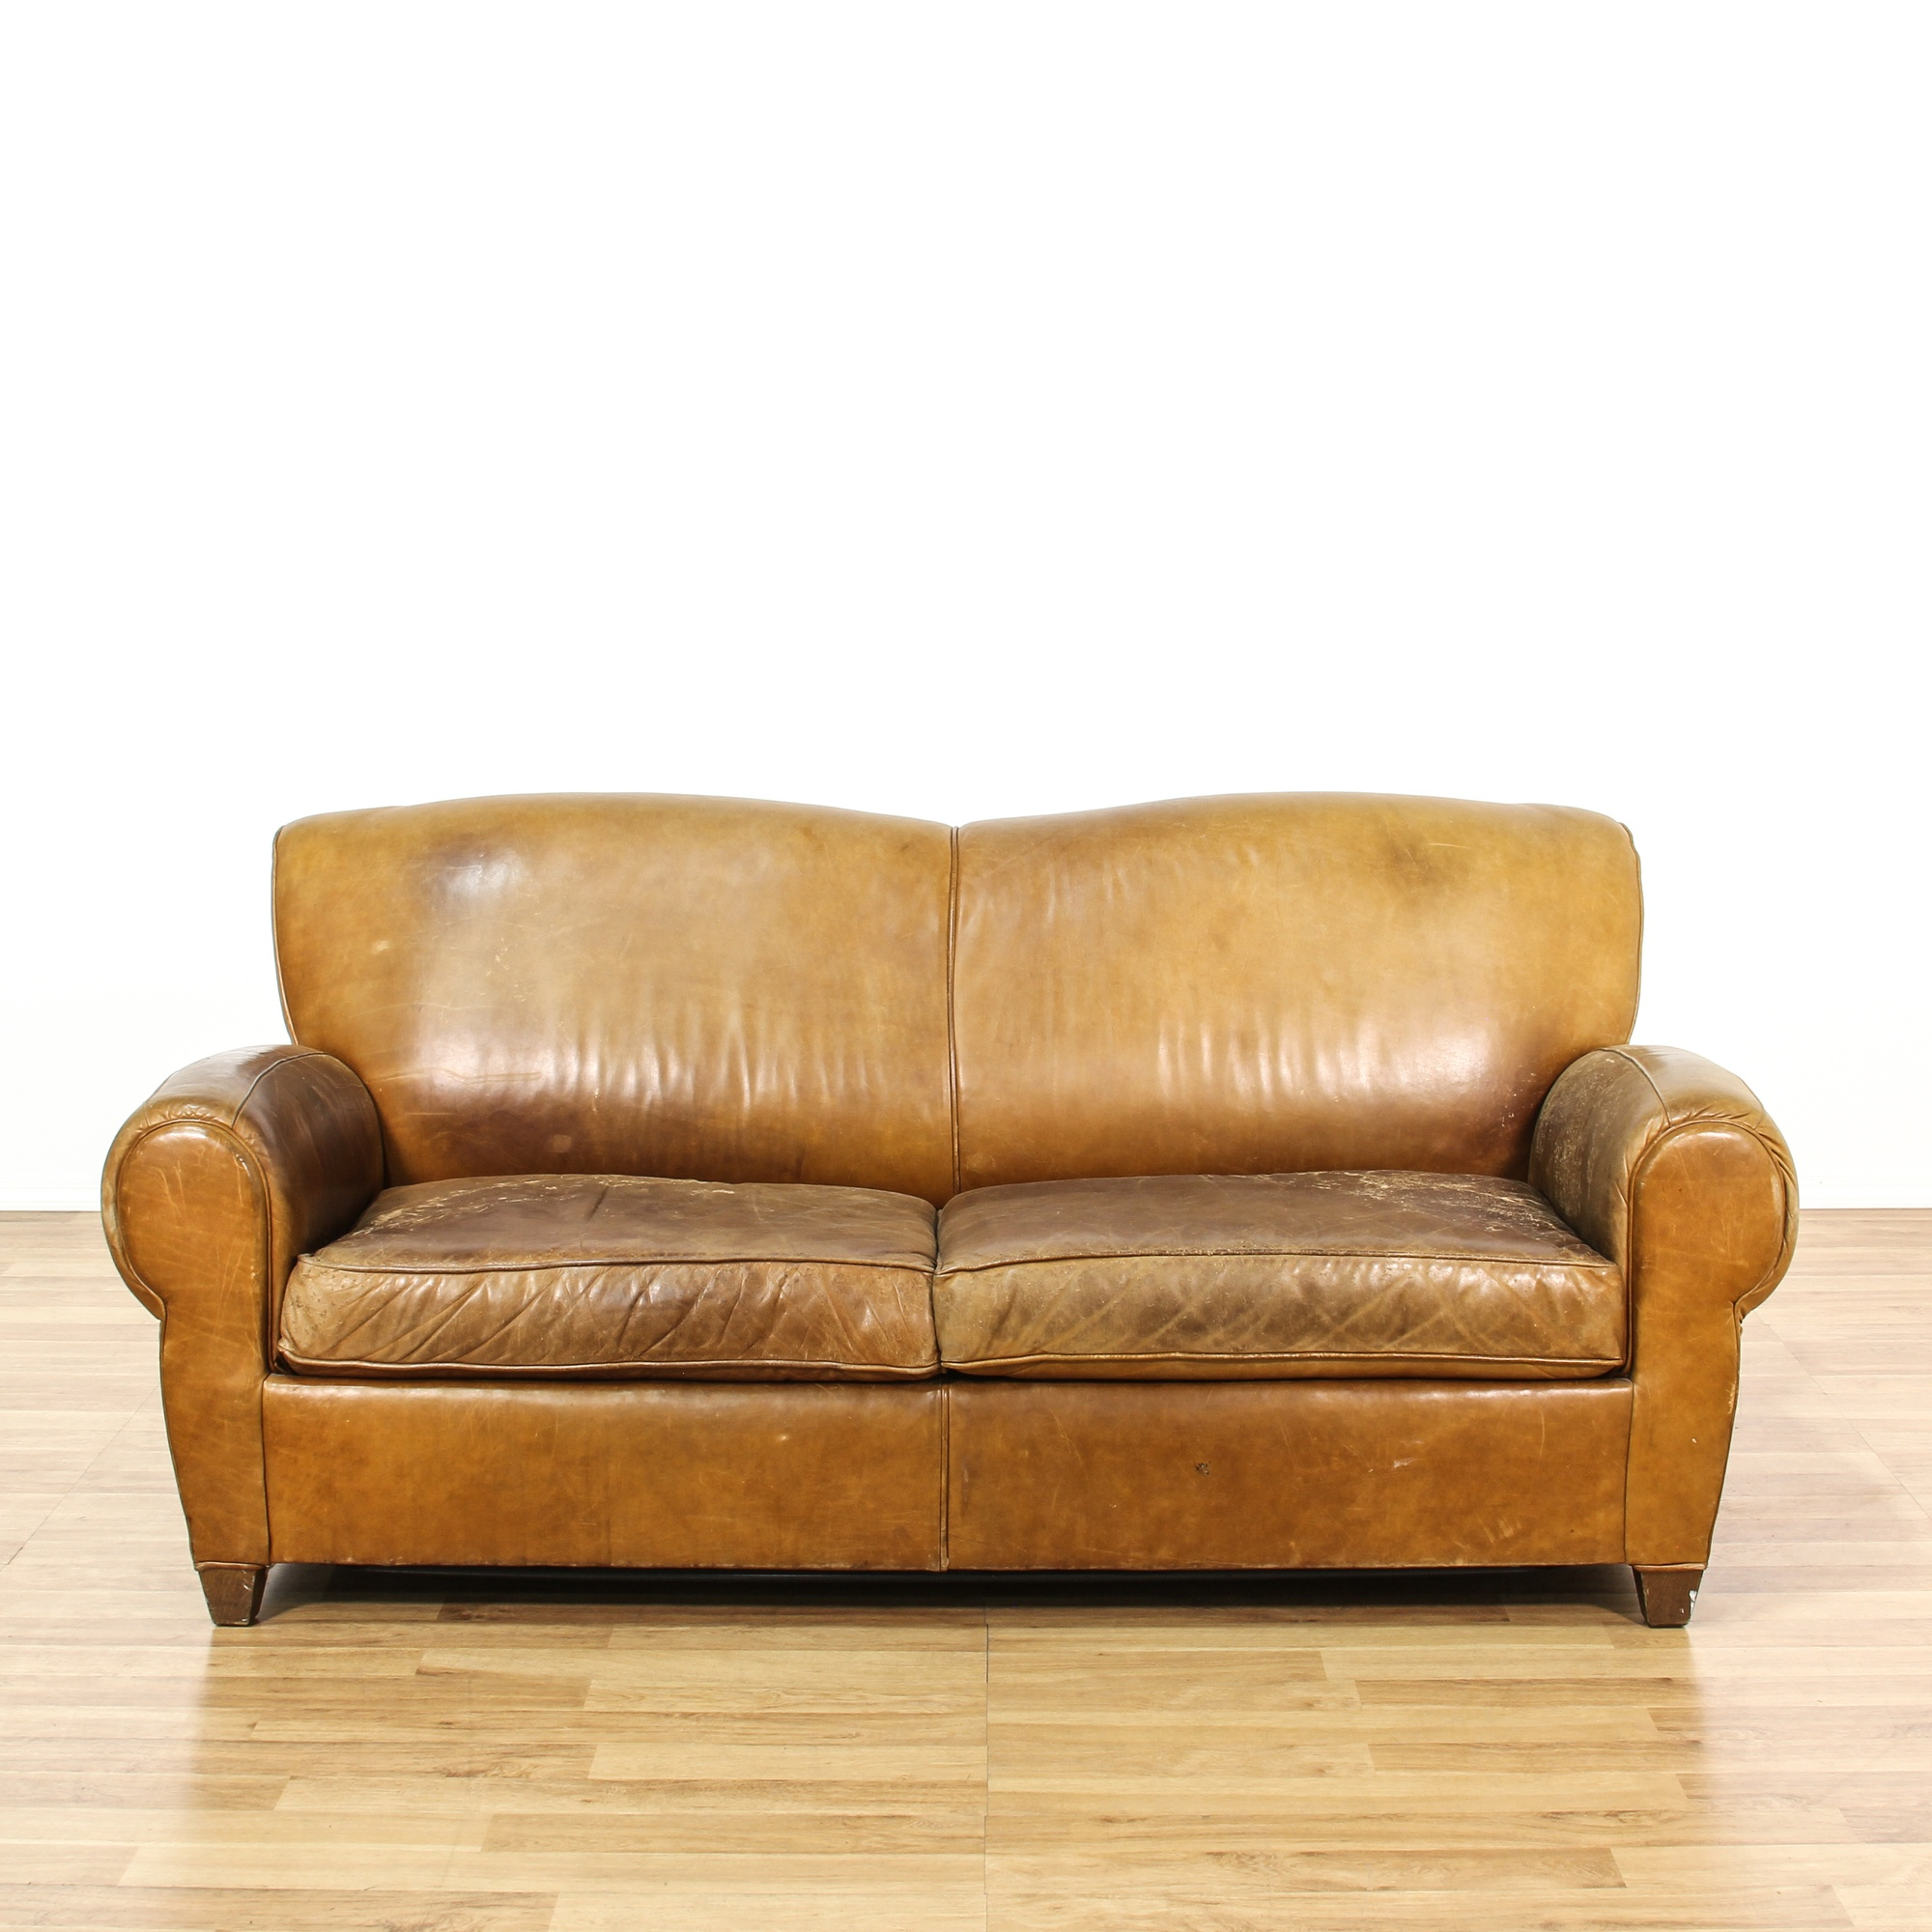 Loveseat Vintage Furniture Leather Upholstered Sleeper Sofa